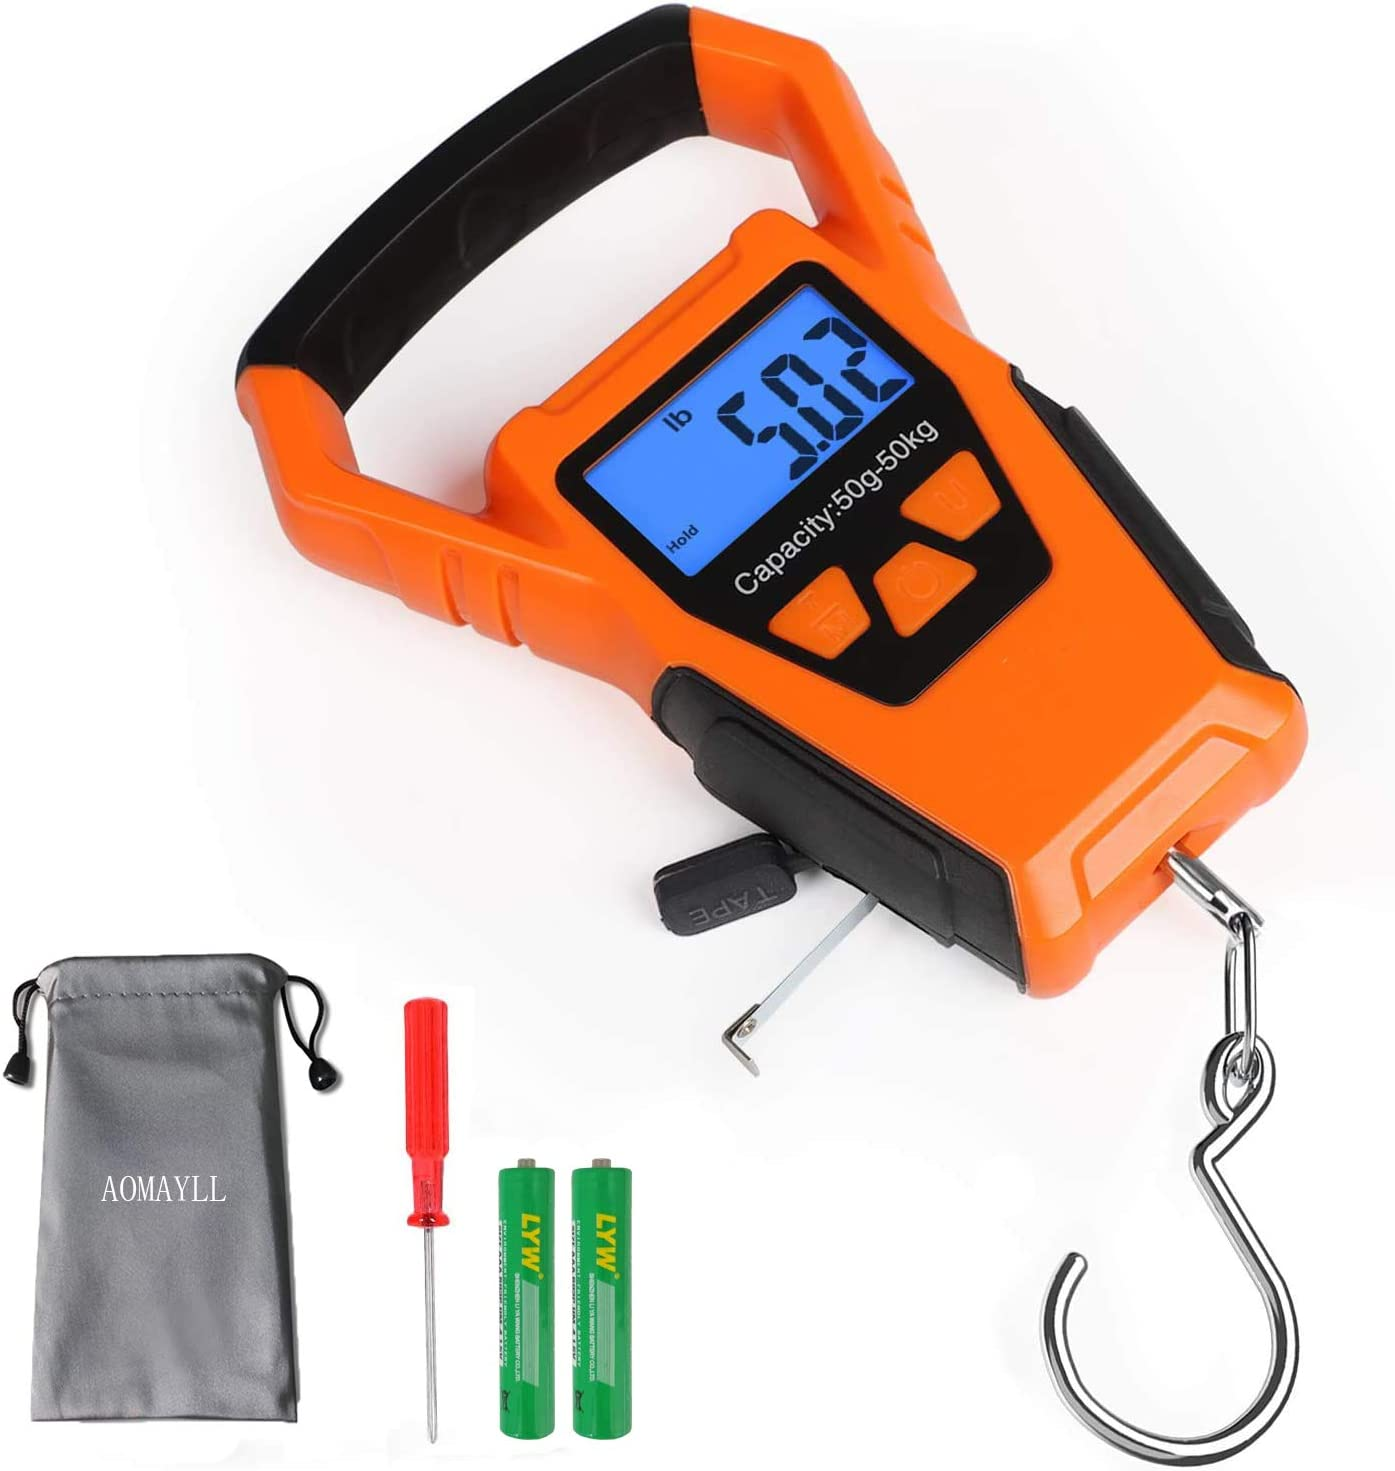 ZHL Waterproof Max 51% OFF Fishing Scale Bombing free shipping with H Luggage Ruler Weight